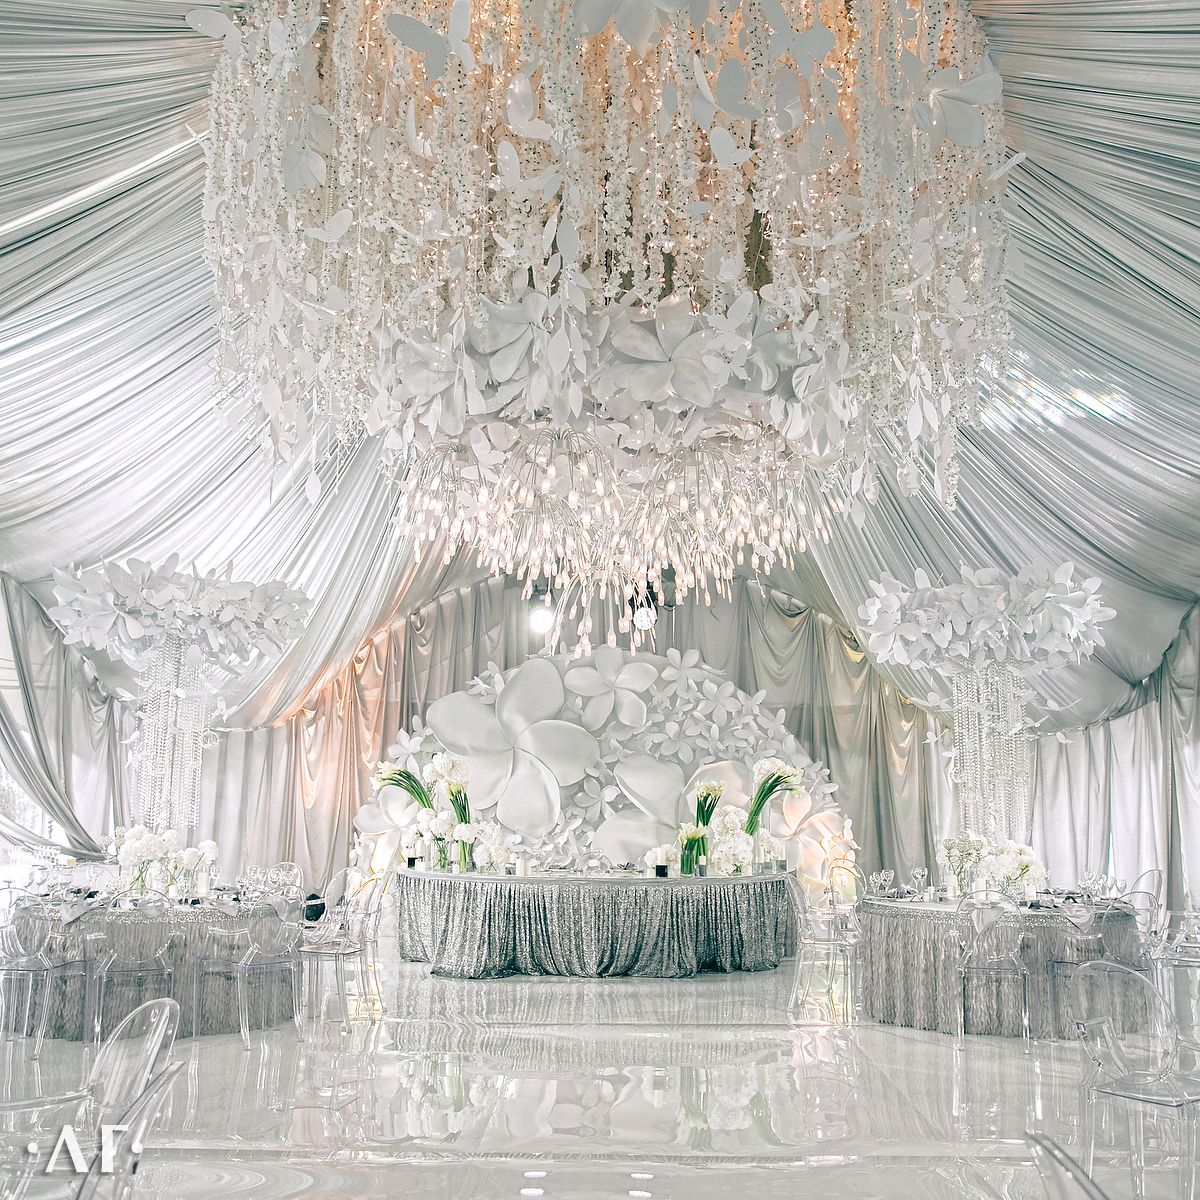 Pin by Зумруд on Wedding Decor | Pinterest | Wedding and Weddings